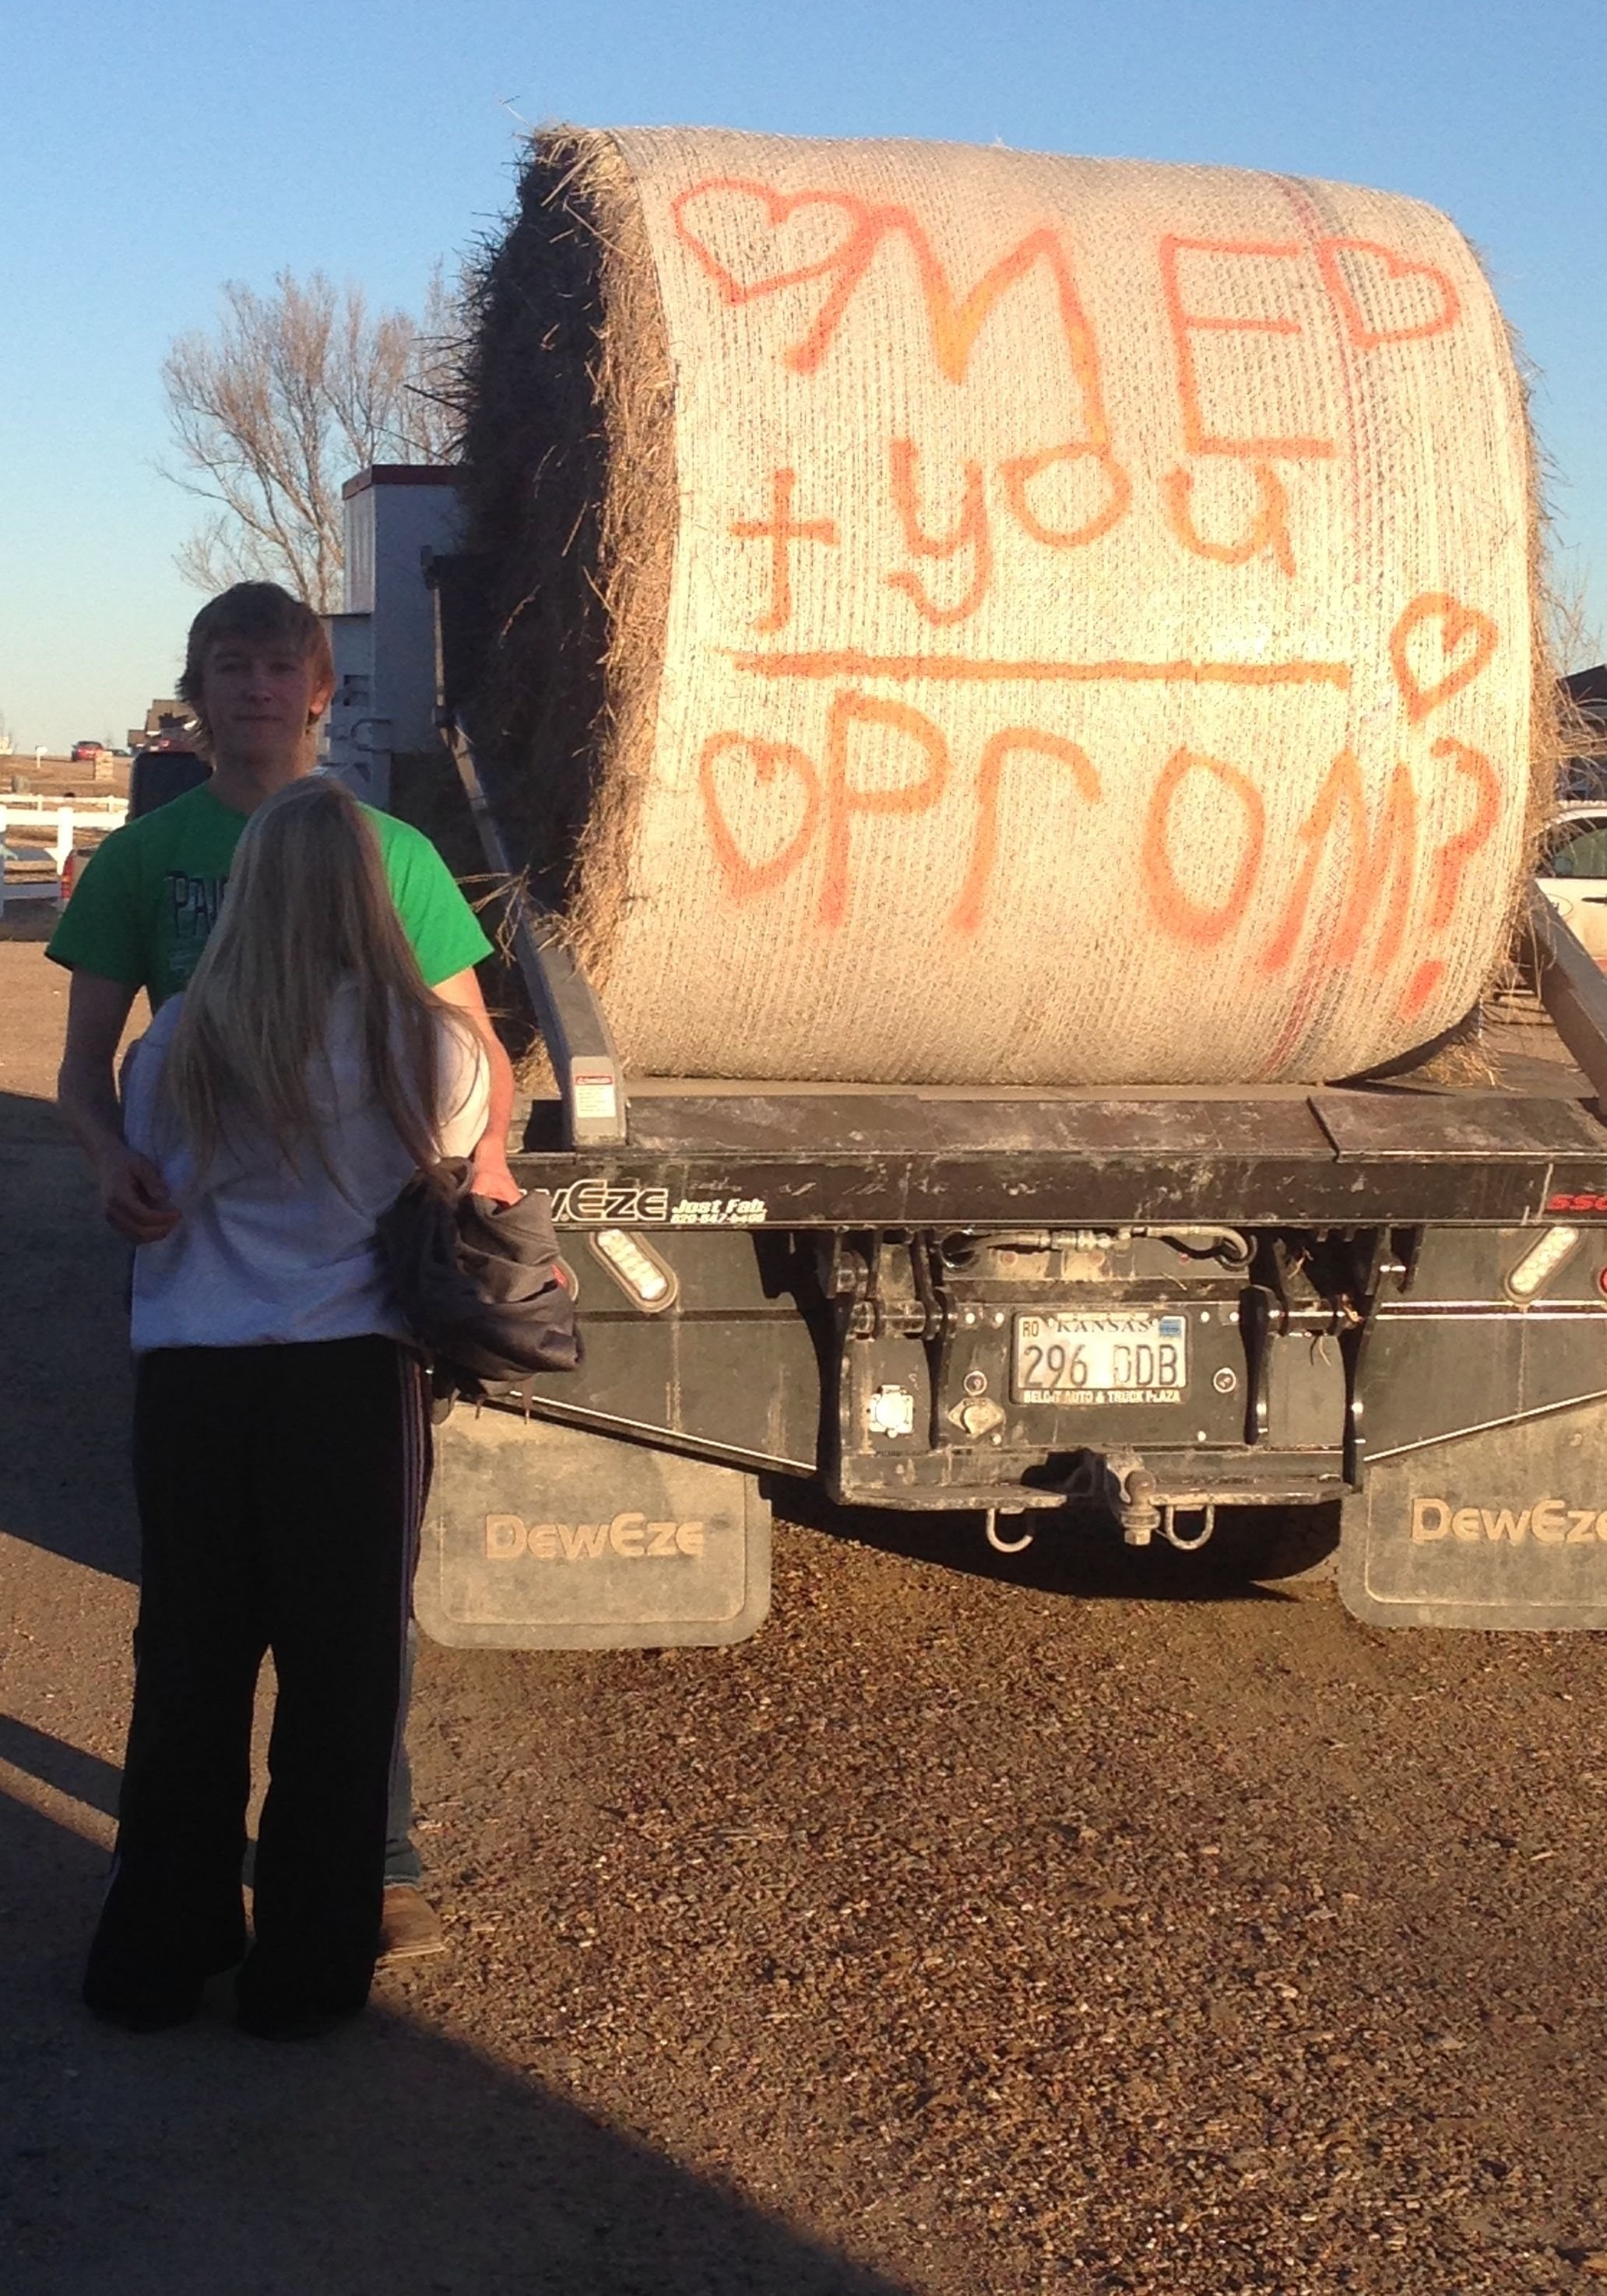 10 Fantastic Good Ideas For Asking A Girl To Prom idea for asking a girl to prom farmer style too cute prom proposal 4 2021